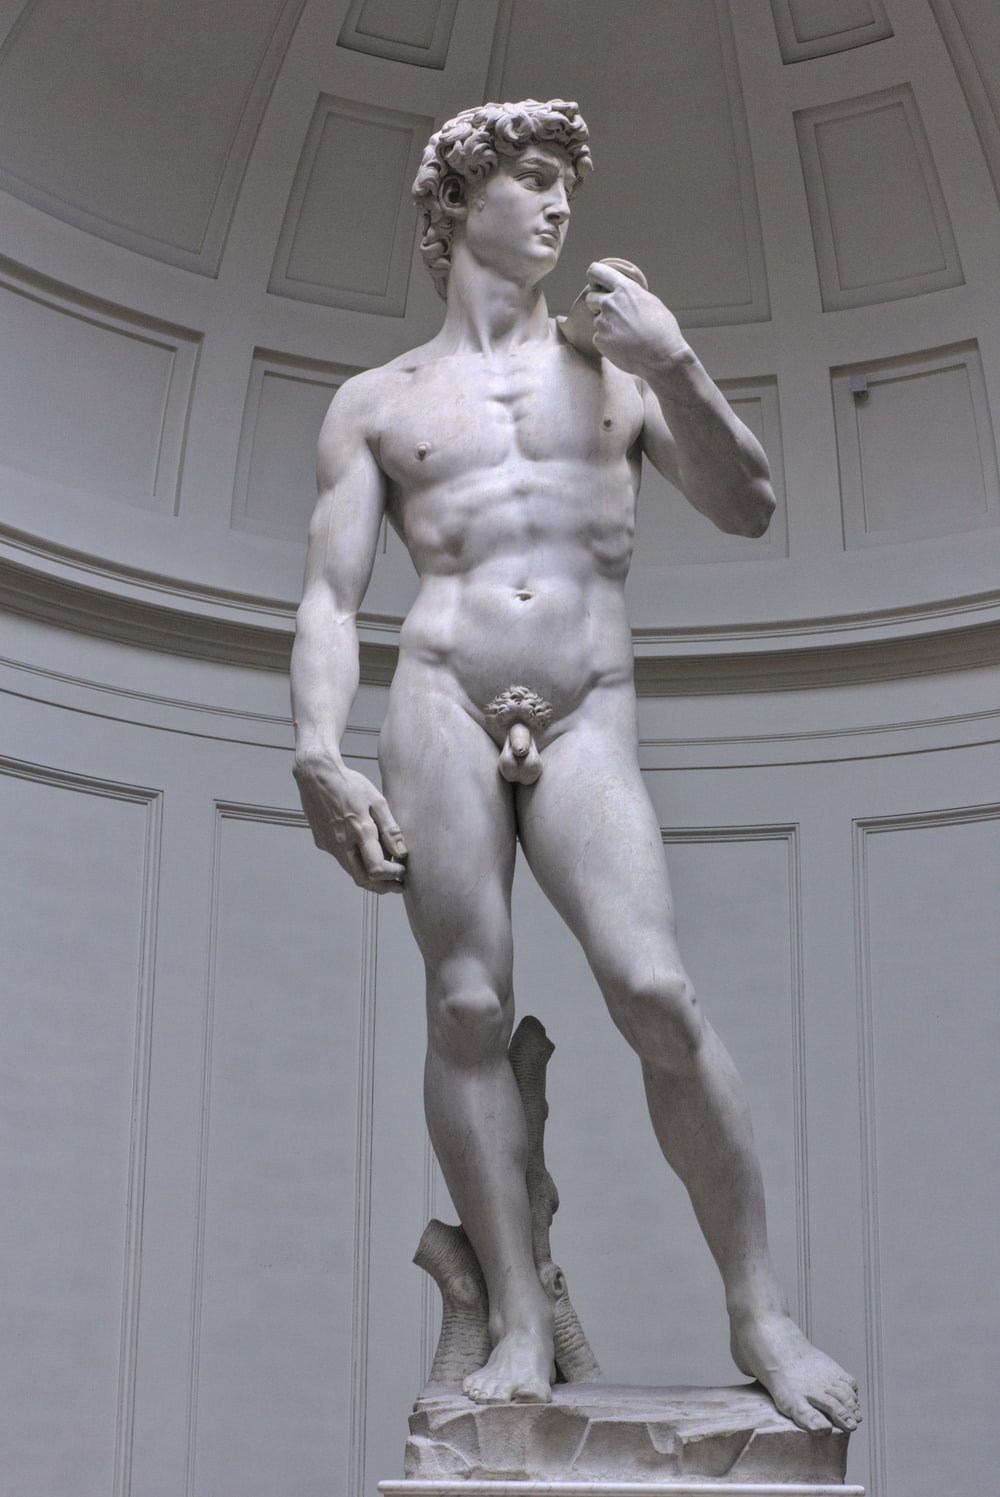 naked man statue near white wooden wall